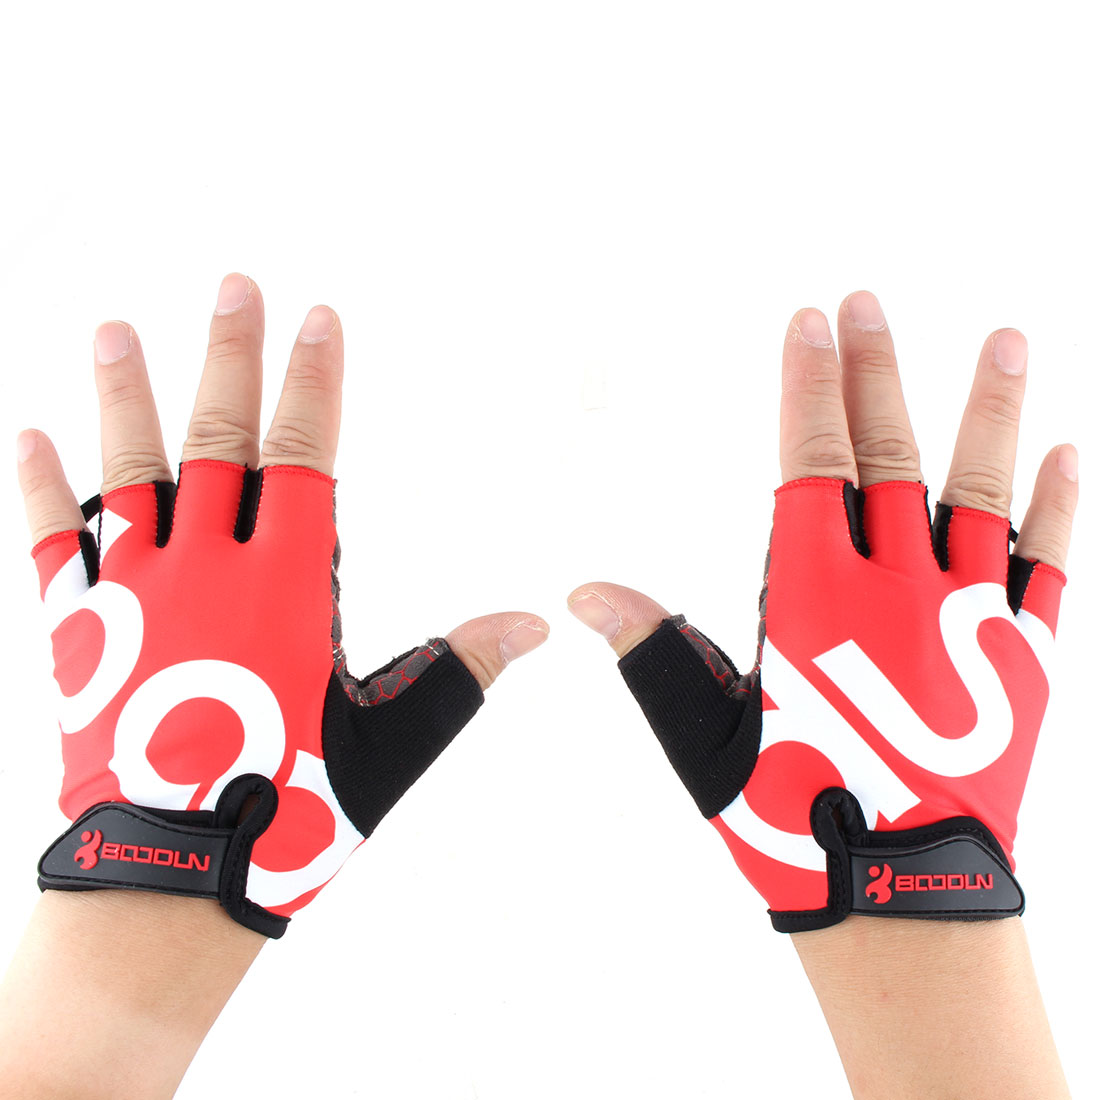 BOODUN Authorized Unisex Outdoor Sports Cycling Biking Exercise Adjustable Fitness Half Finger Gloves Red S Size Pair